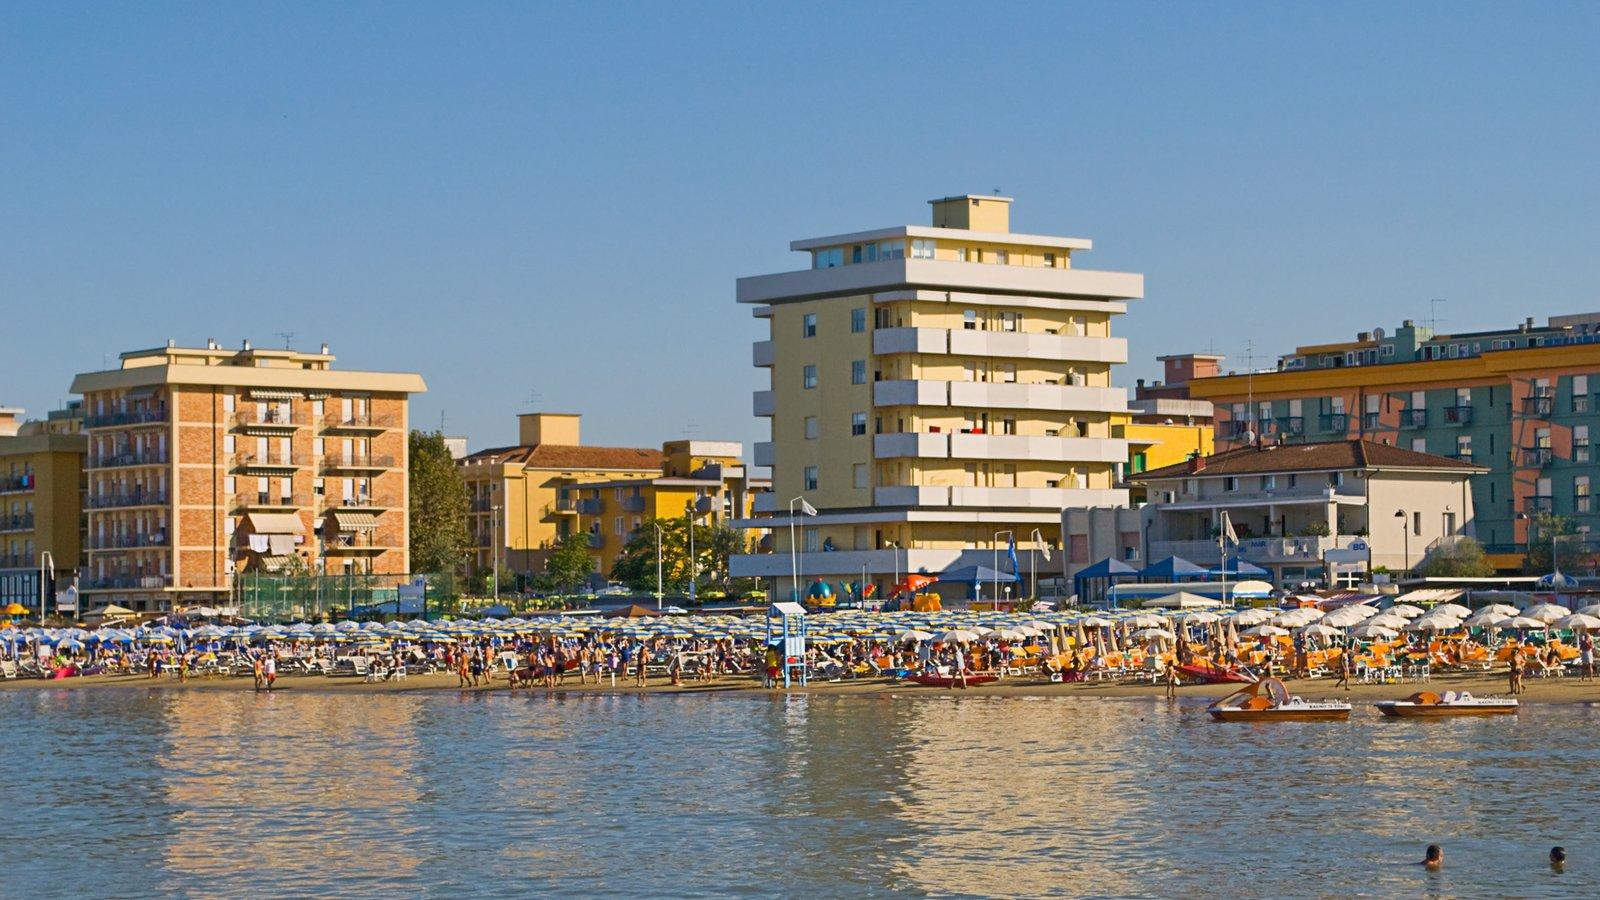 Bellaria-Igea Marina which includes general coastal views and a city